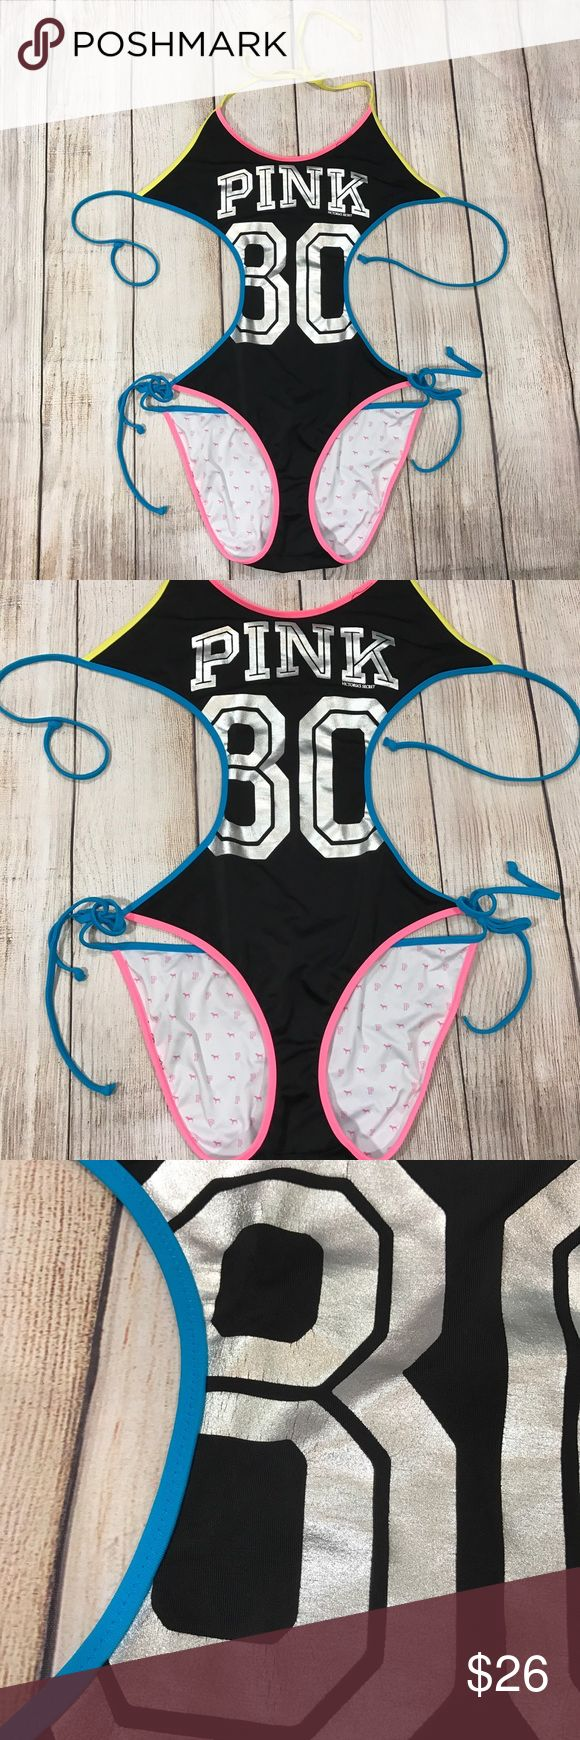 Victoria's Secret PINK 80 swim sexy one piece Victoria's Secret PINK swim one piece. Two tie strips at neck and at back of chest. Open sides. The number 8 is cracking a bit. Otherwise no stains or holes. Length from top of chest to bottom: 24 inches. Across chest:  16 inches. Across hips: 13 inches PINK Victoria's Secret Swim One Pieces